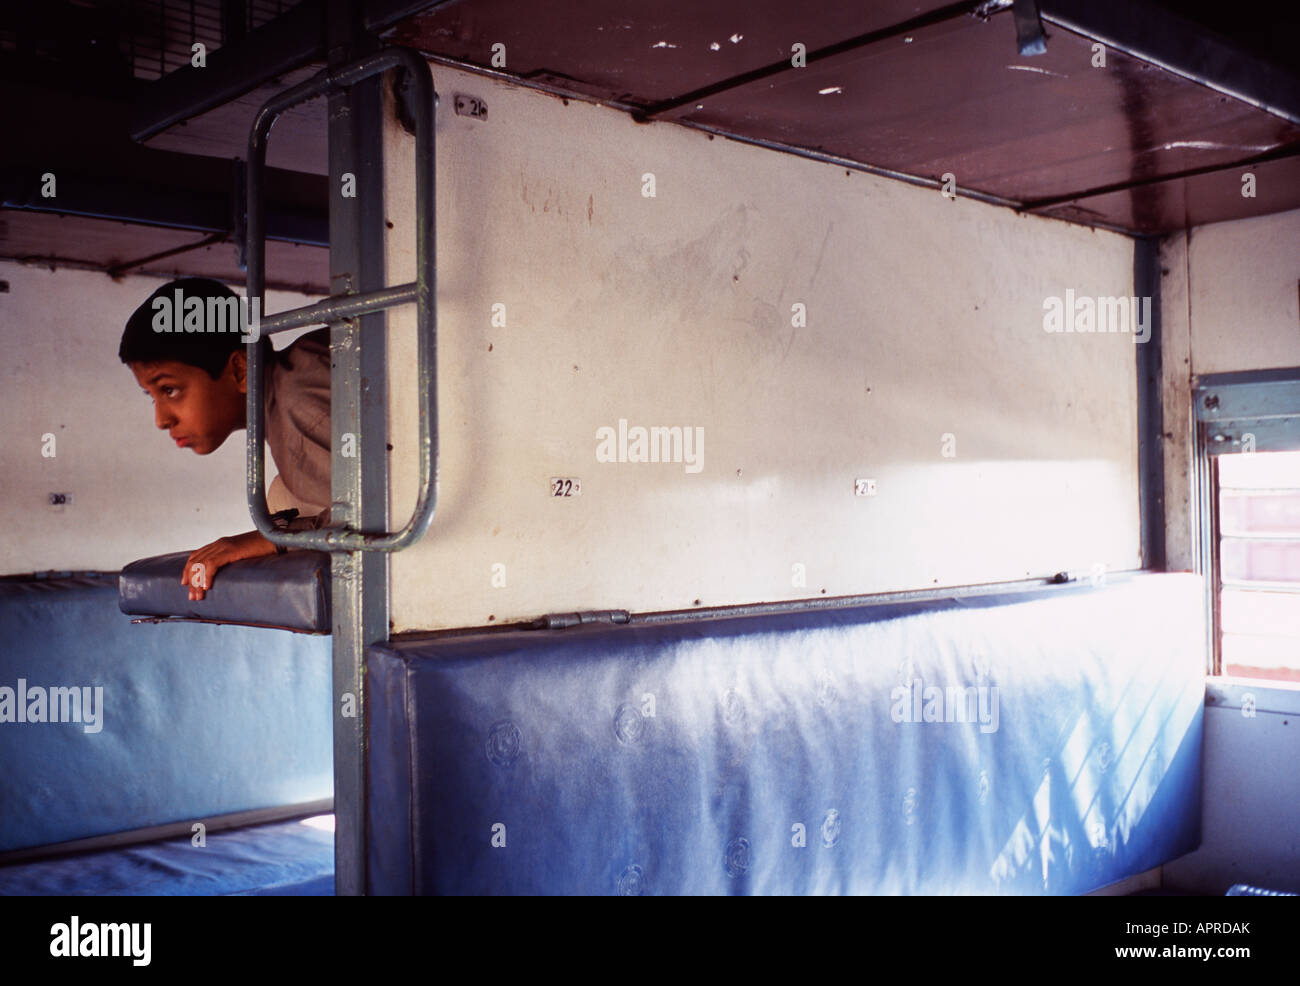 Indian boy on sleeper train, India - Stock Image